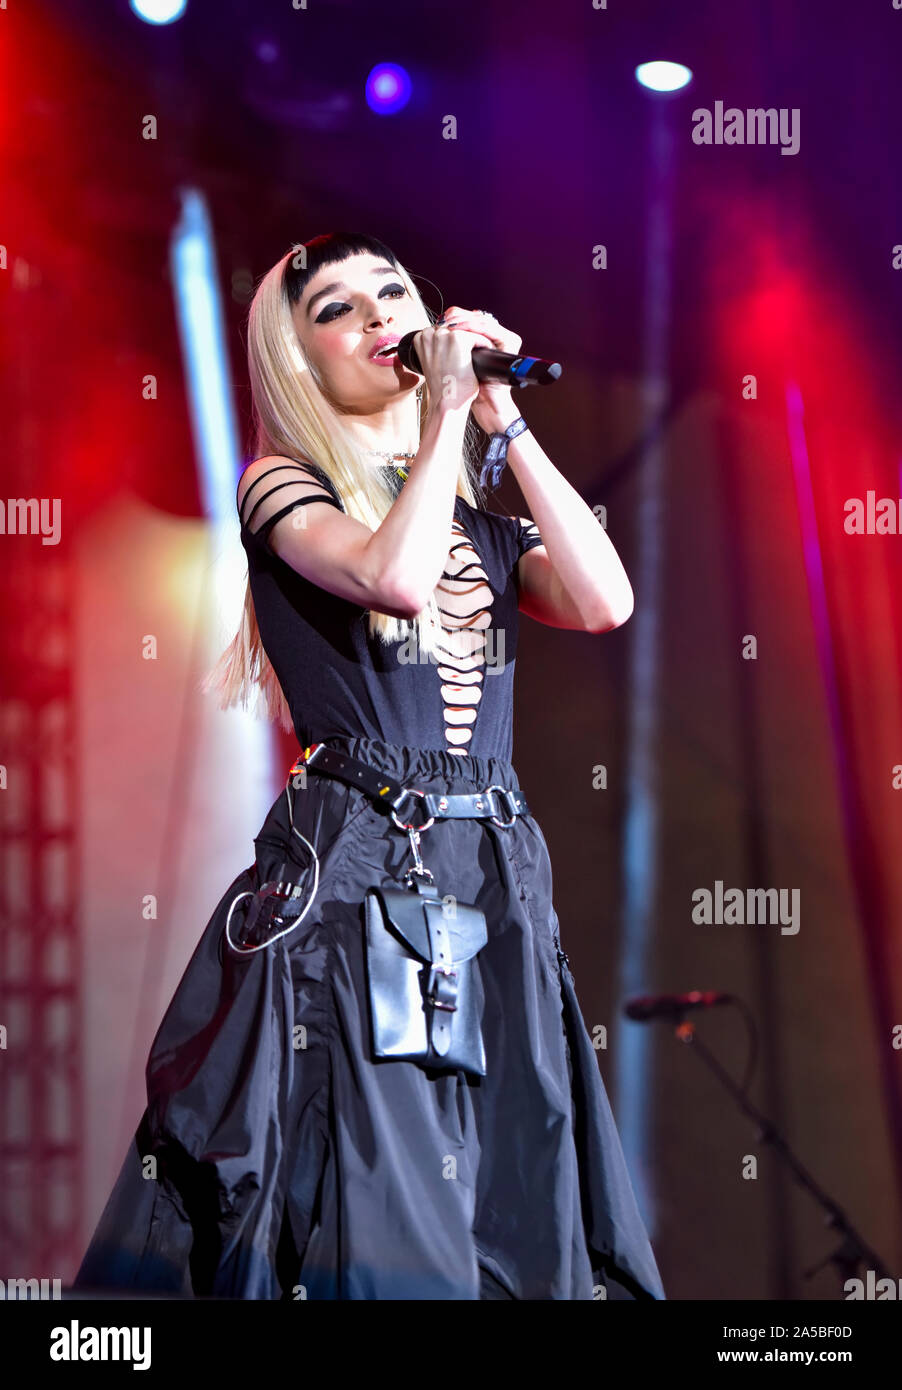 Las Vegas Nevada, October 18, 2019 – The band Poppy performing in concert at the third annual Las Rageous heavy metal music festival held at the Downtown Las Vegas Events Center. Photo Credit: Ken Howard Images Stock Photo